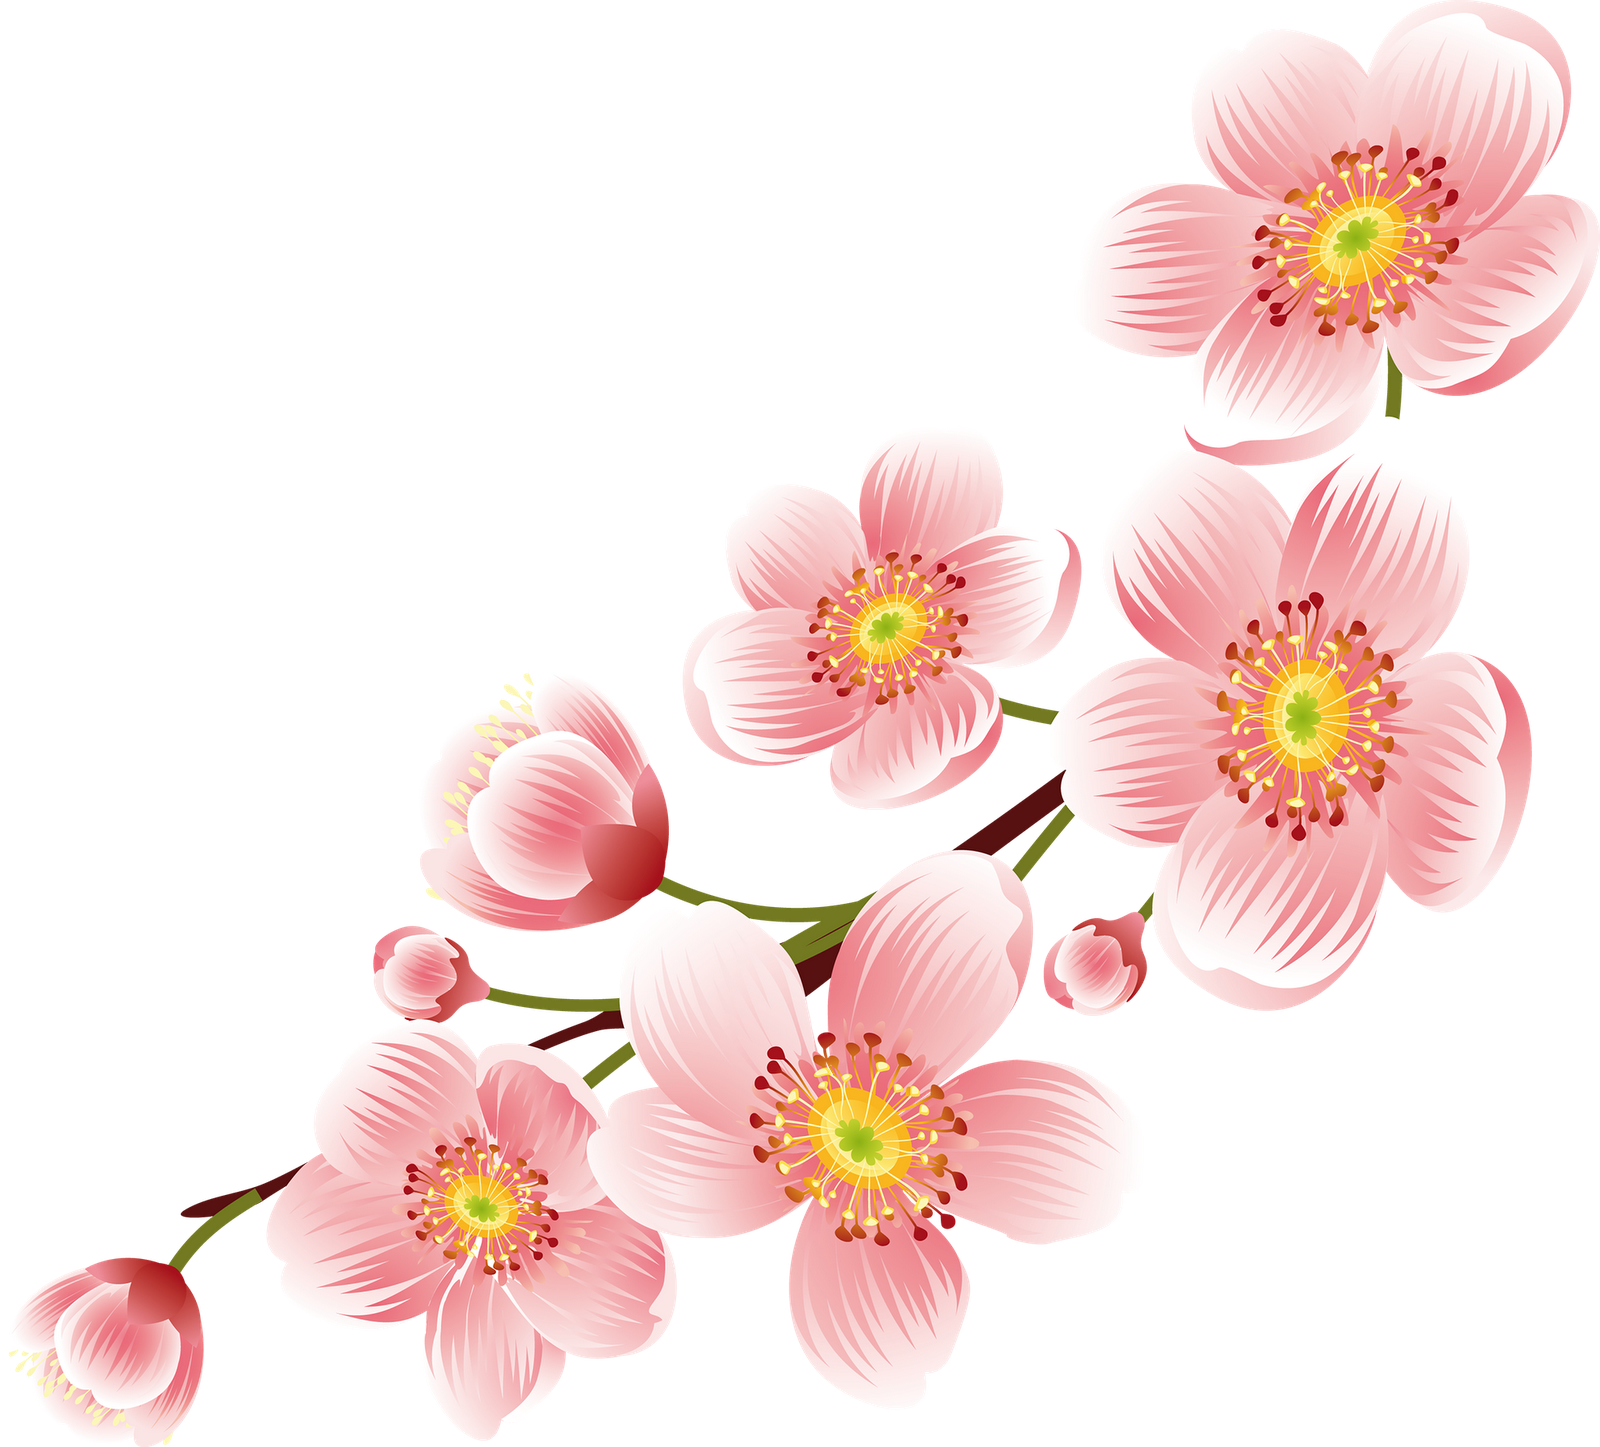 Cherry Blossom Png Transparent Background image #45486